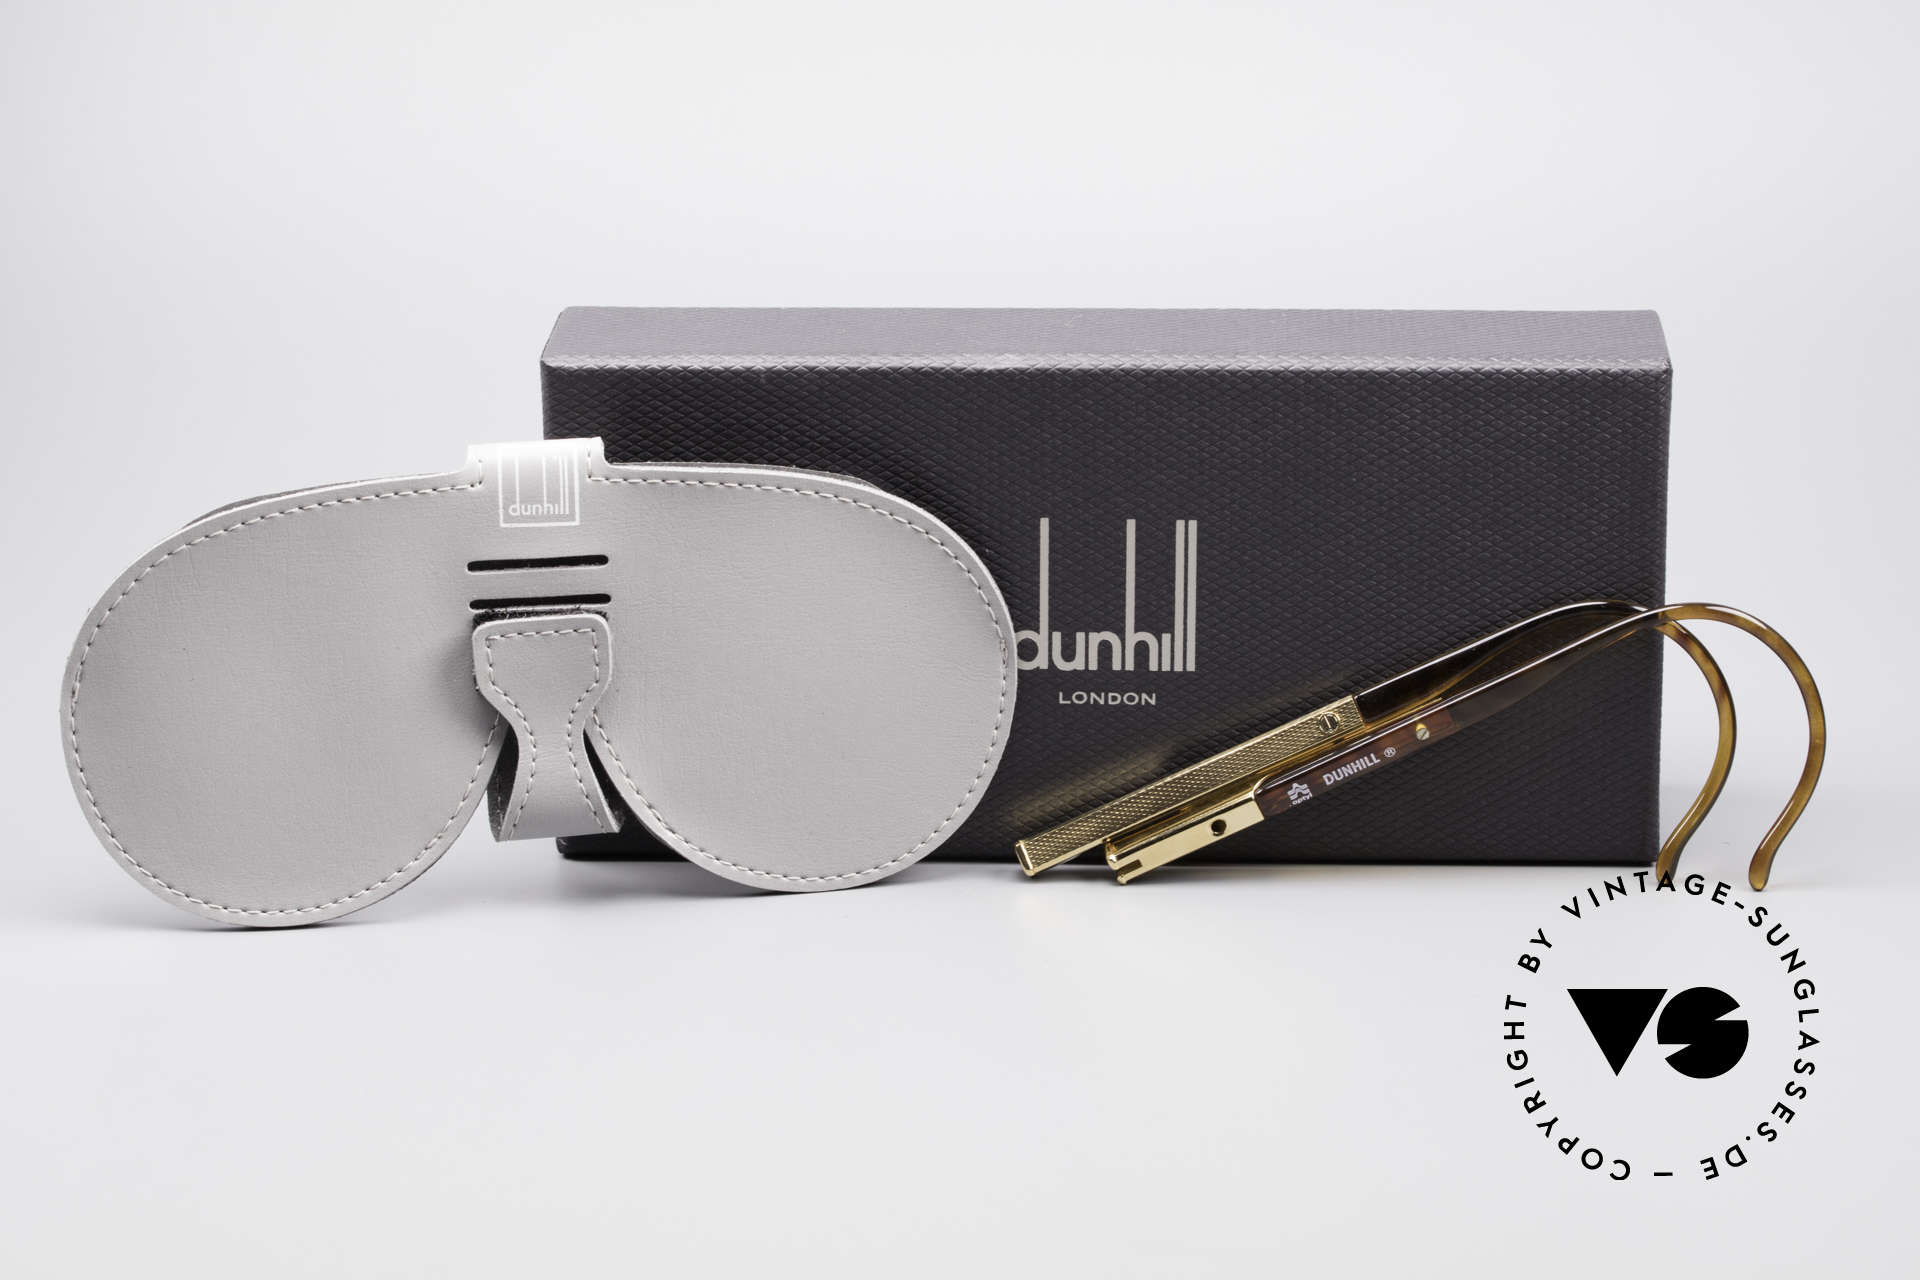 Dunhill 6006 80's Gentlemen's Sunglasses, never worn (like all our rare vintage 80's Dunhill), Made for Men